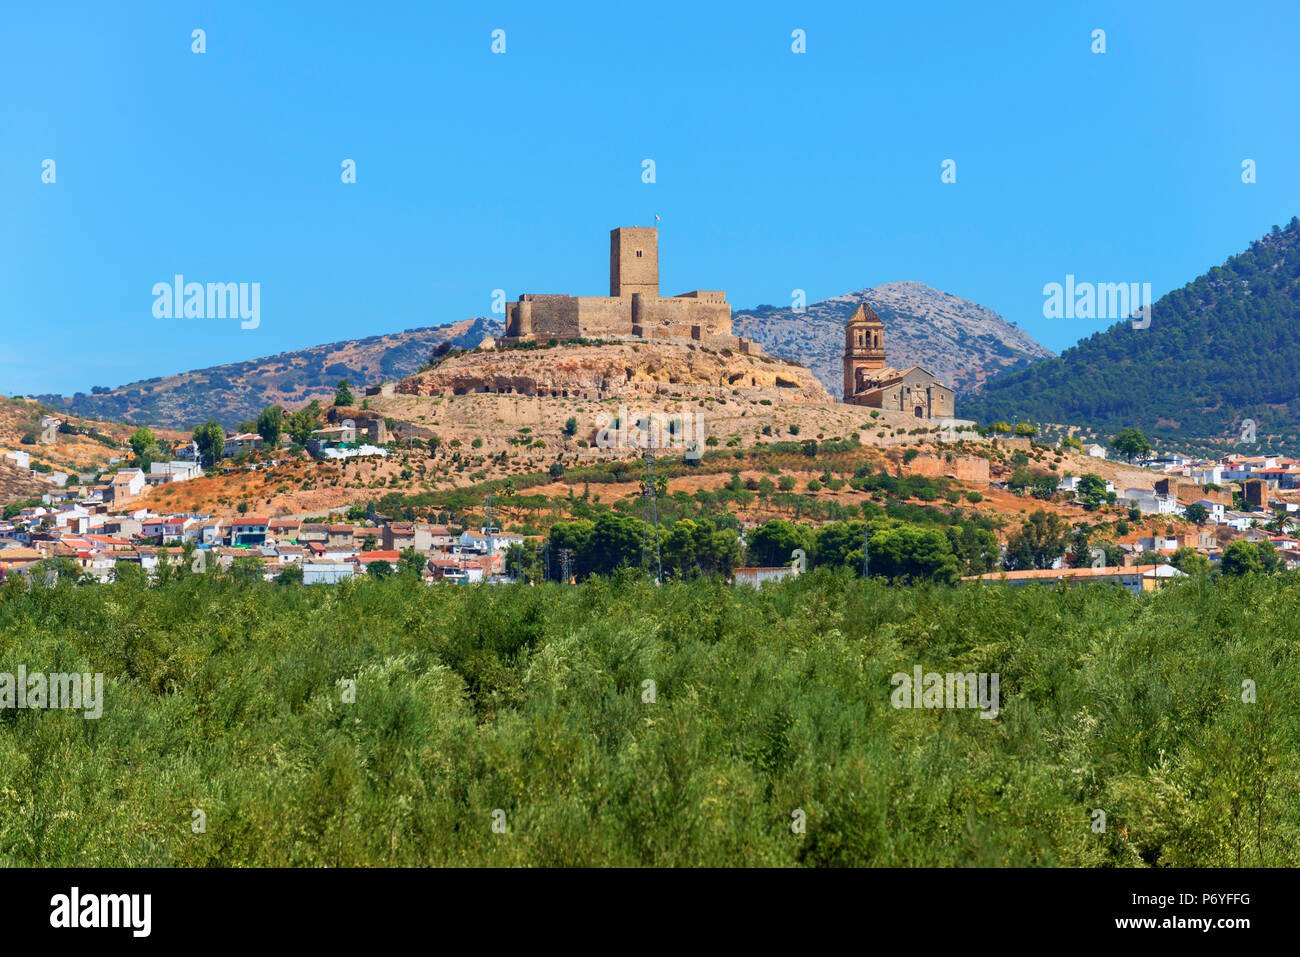 View at Alcaudete with castle, Andalusia, Spain - Stock Image